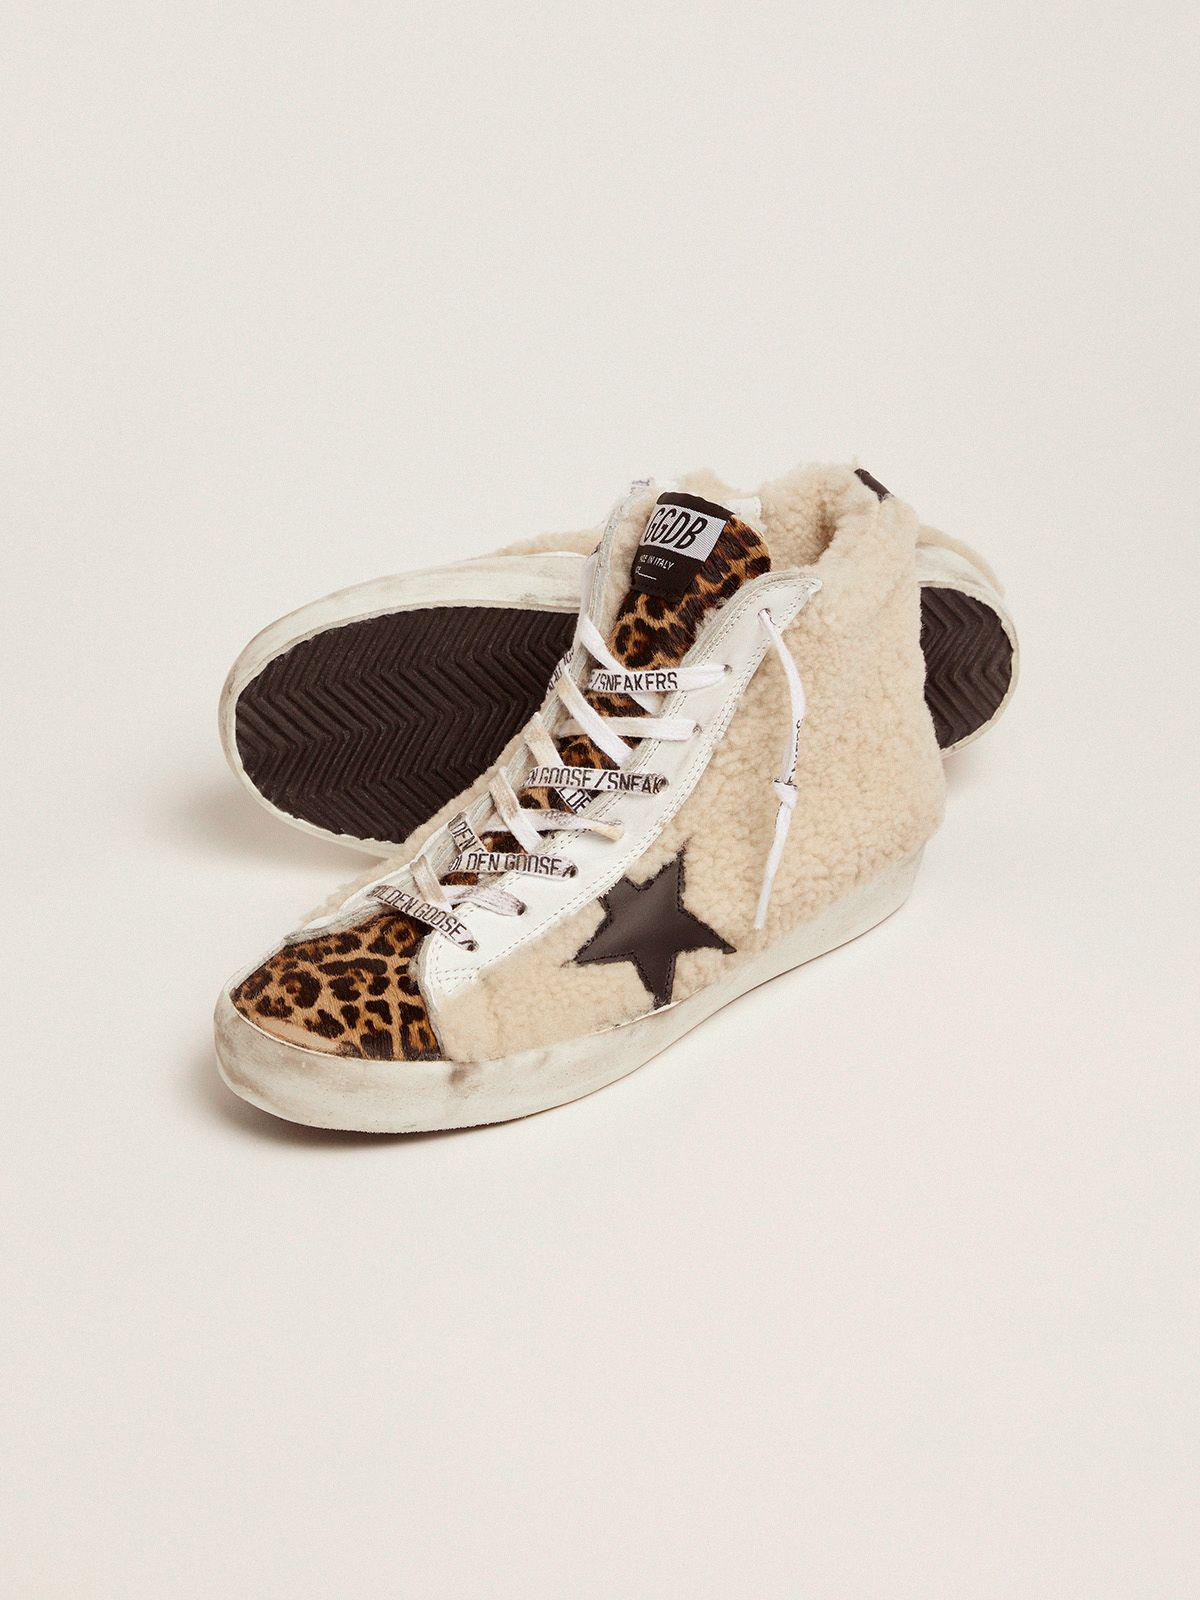 Francy sneakers made of shearling and pony skin with a leopard print 2